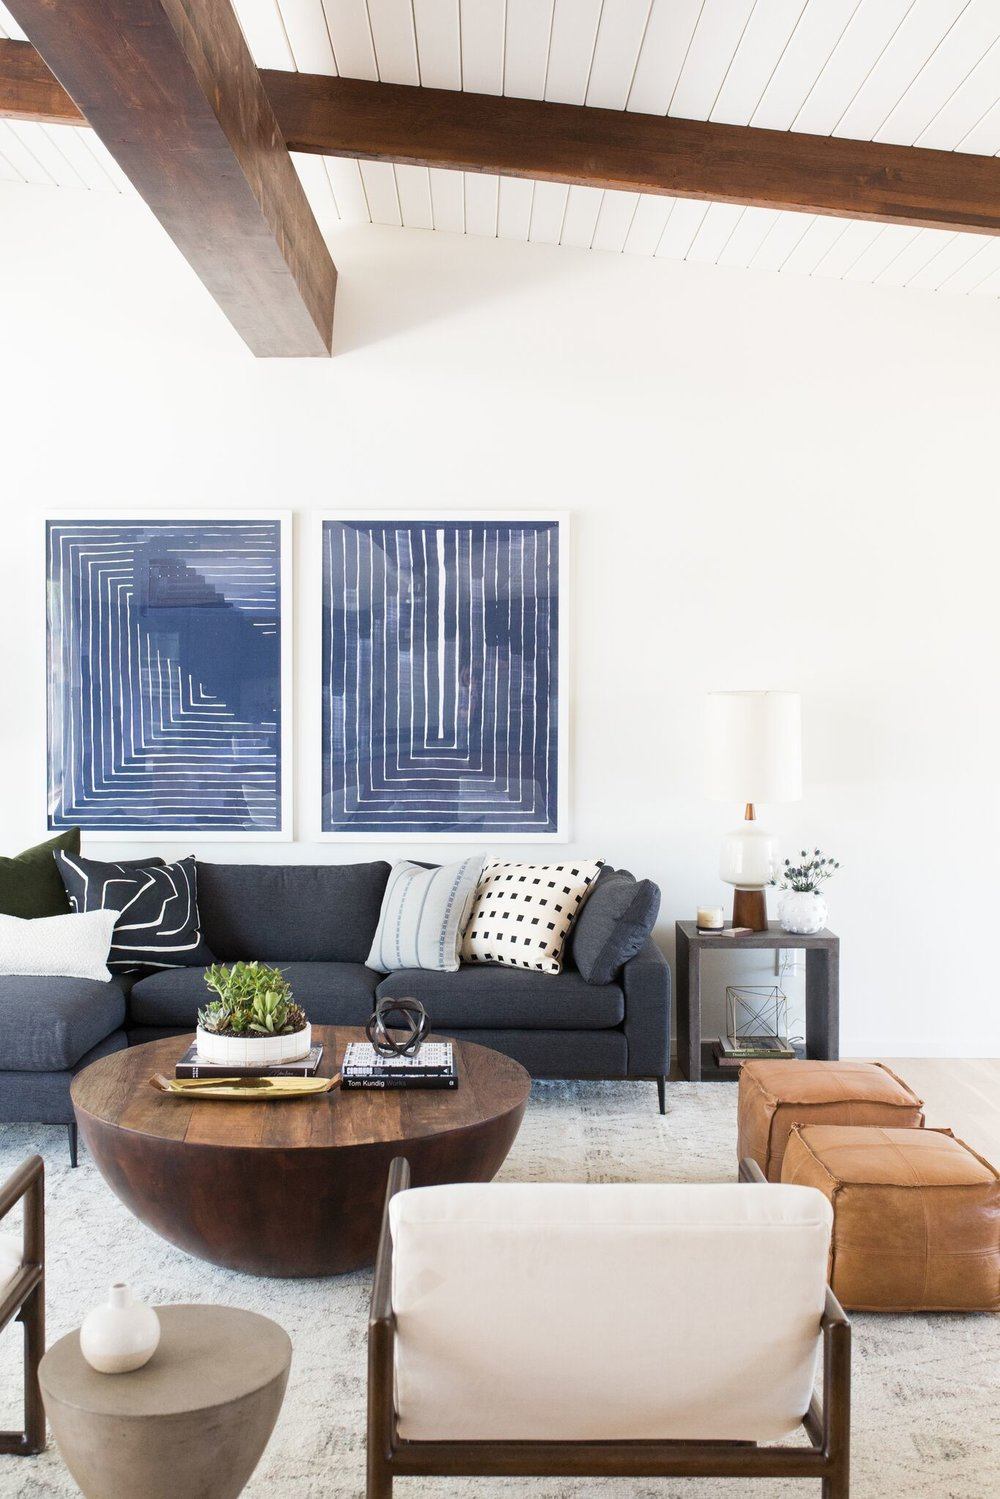 How to Pair a Sectional Sofa with the Appropriate Coffee Table - roomfortuesday.com & Pairing Sectional Sofas and Coffee Tables - Room for Tuesday